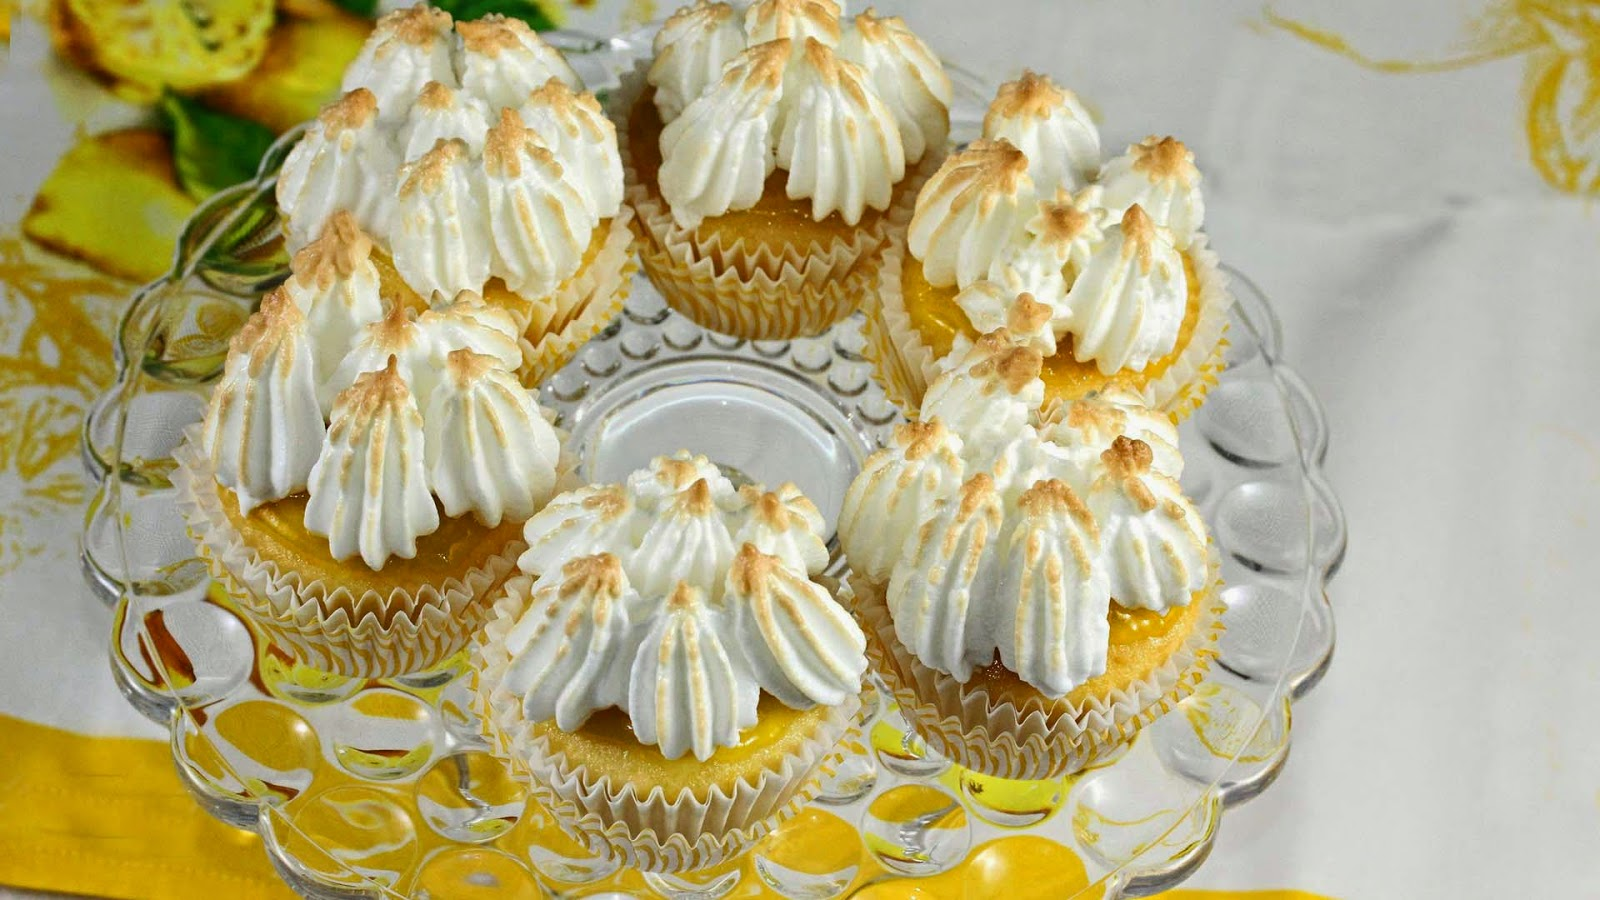 cakes-sweet-yellow-yummy-ice-cake